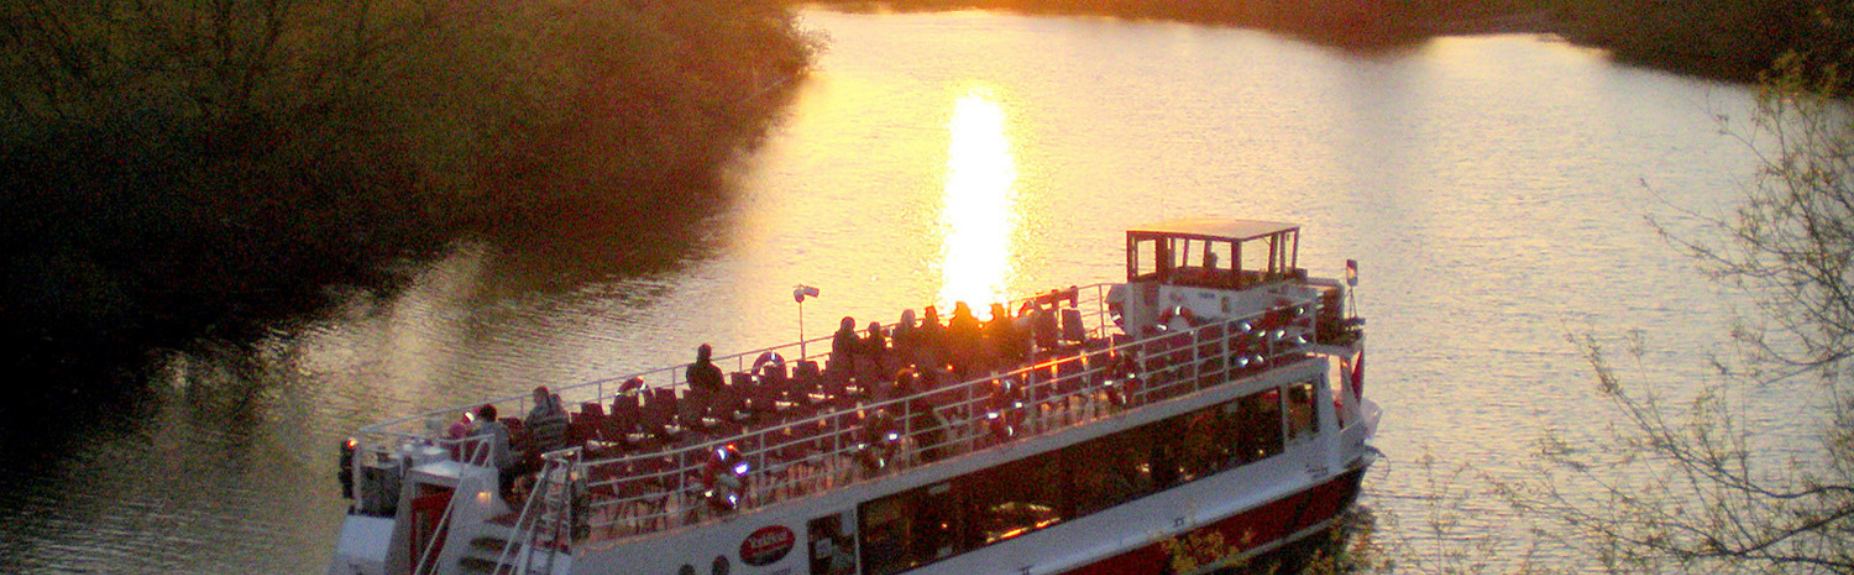 york boat tours on the water